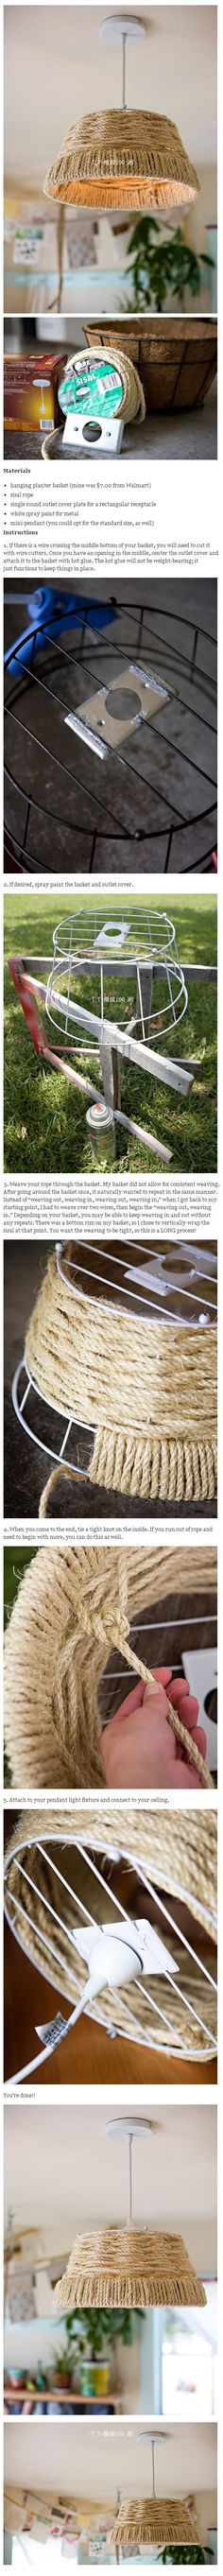 woven rope pendant lamp Design Sponge DIY AshleyAnn. I could try this to make the rope baskets I want to make!